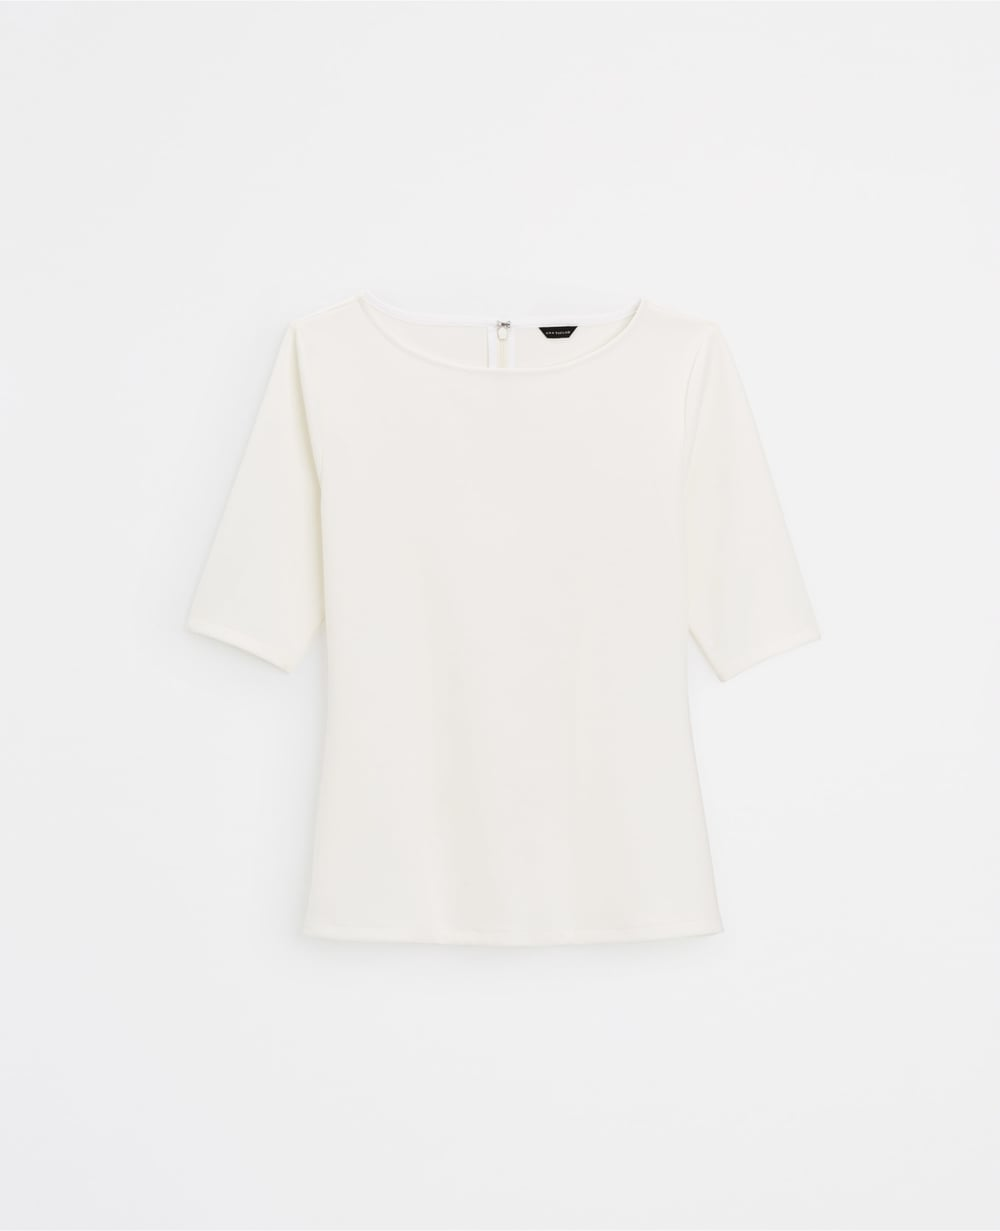 Ponte Short Sleeve Top. Available in multiple colors. Ann Taylor. $59.